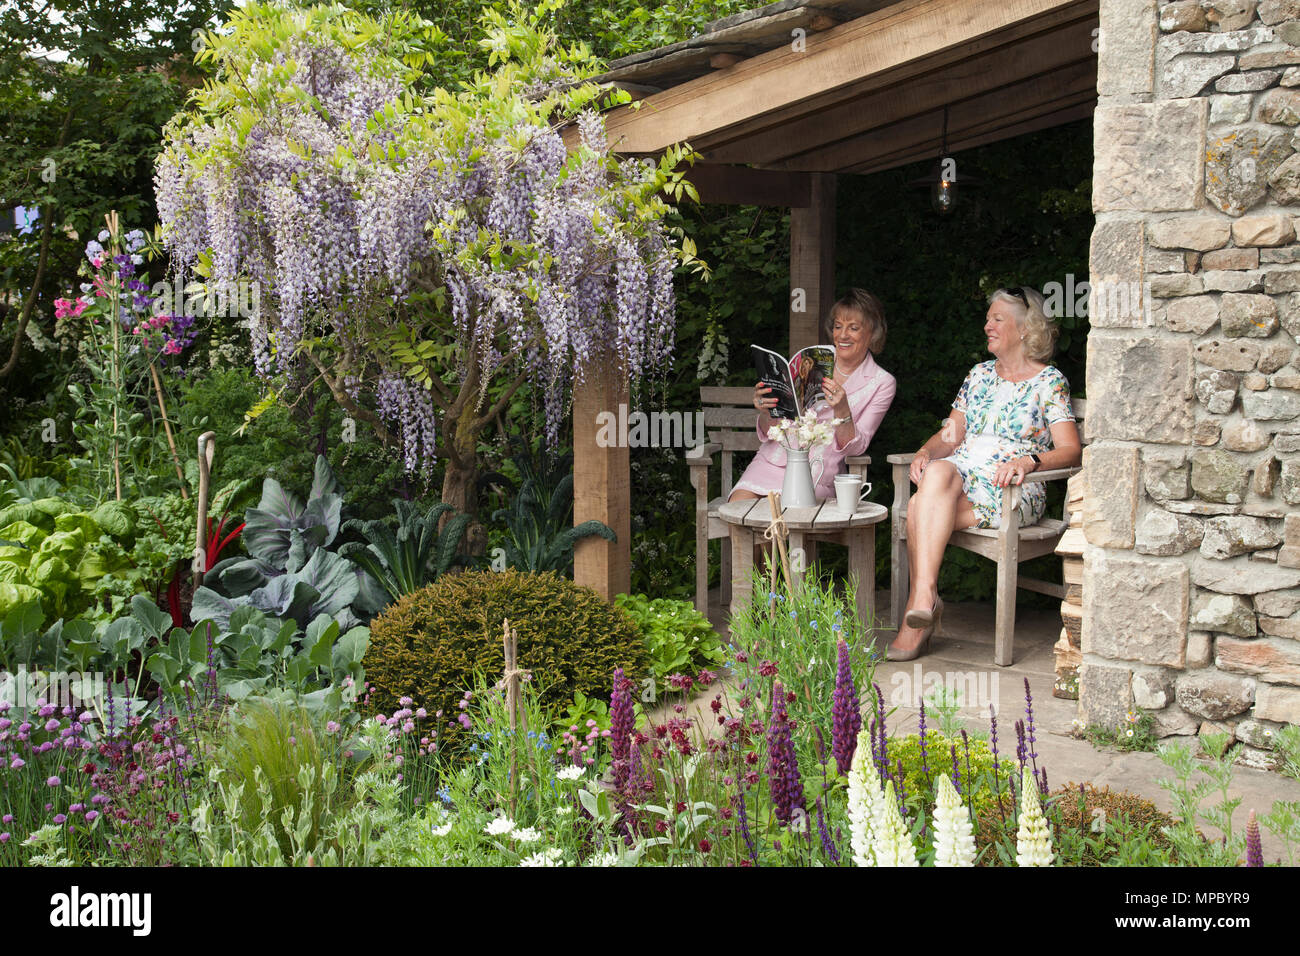 Chelsea, London, UK. 21st May, 2018. Chelsea, London, UK. 21st May 2018. Dame Esther Rantzen and a friend on the Welcome to Yorkshire garden at Chelsea Flower Show 2018, designed by Mark Gregory for Landformconsultants.co.uk Credit: Jenny Lilly/Alamy Live News - Stock Image